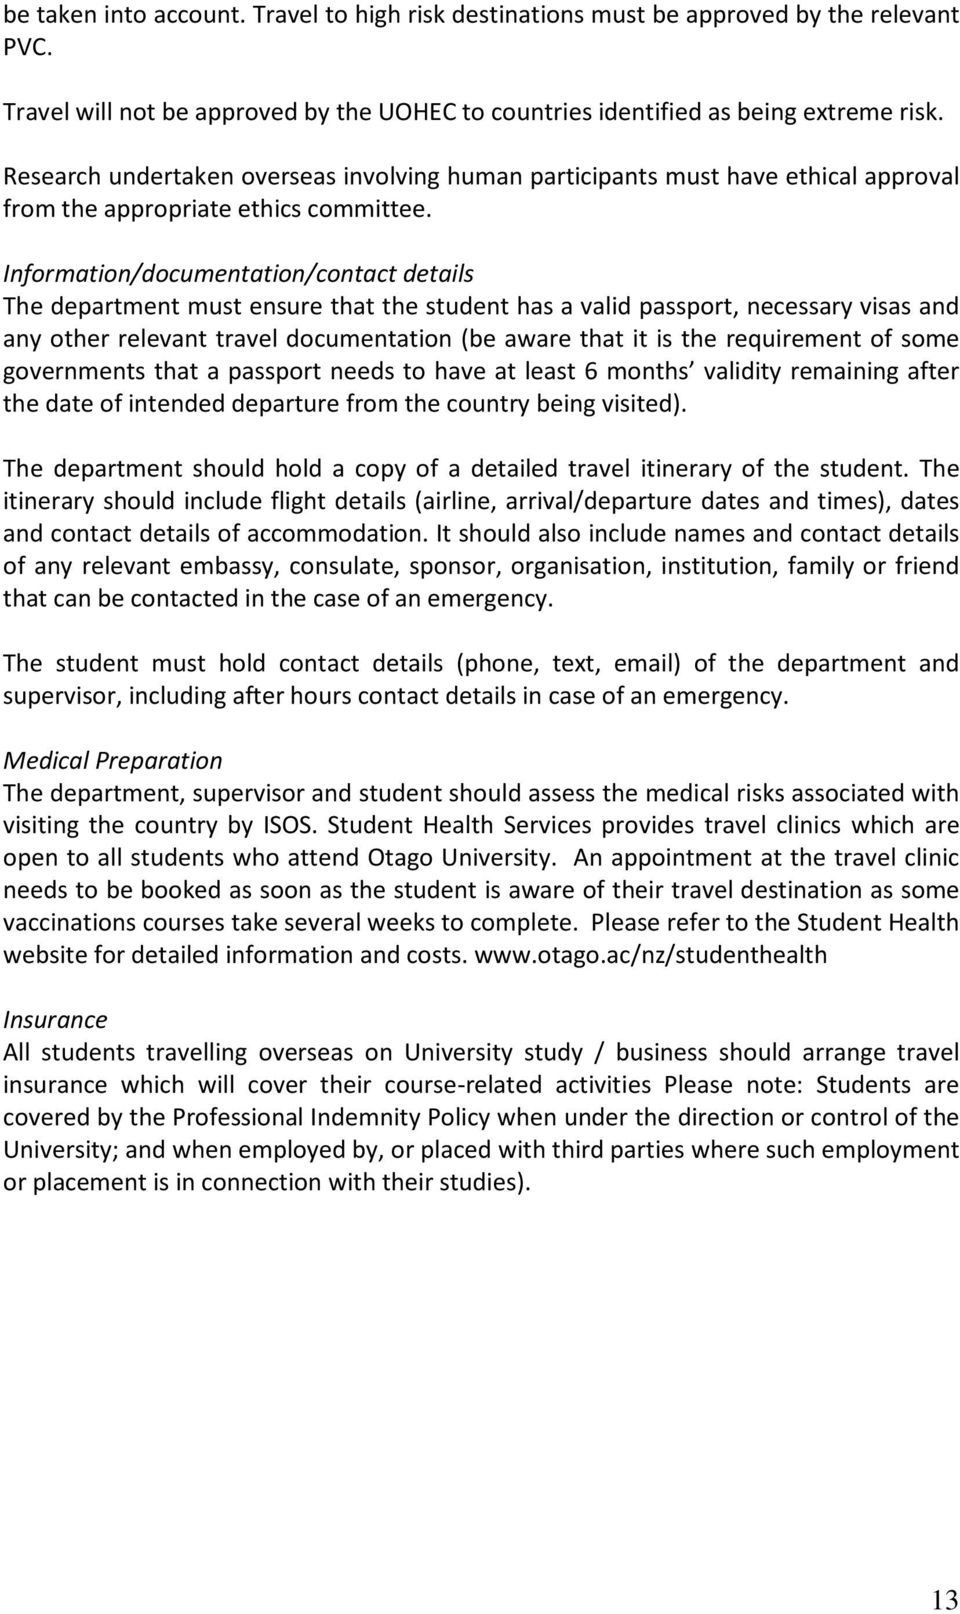 Information/documentation/contact details The department must ensure that the student has a valid passport, necessary visas and any other relevant travel documentation (be aware that it is the